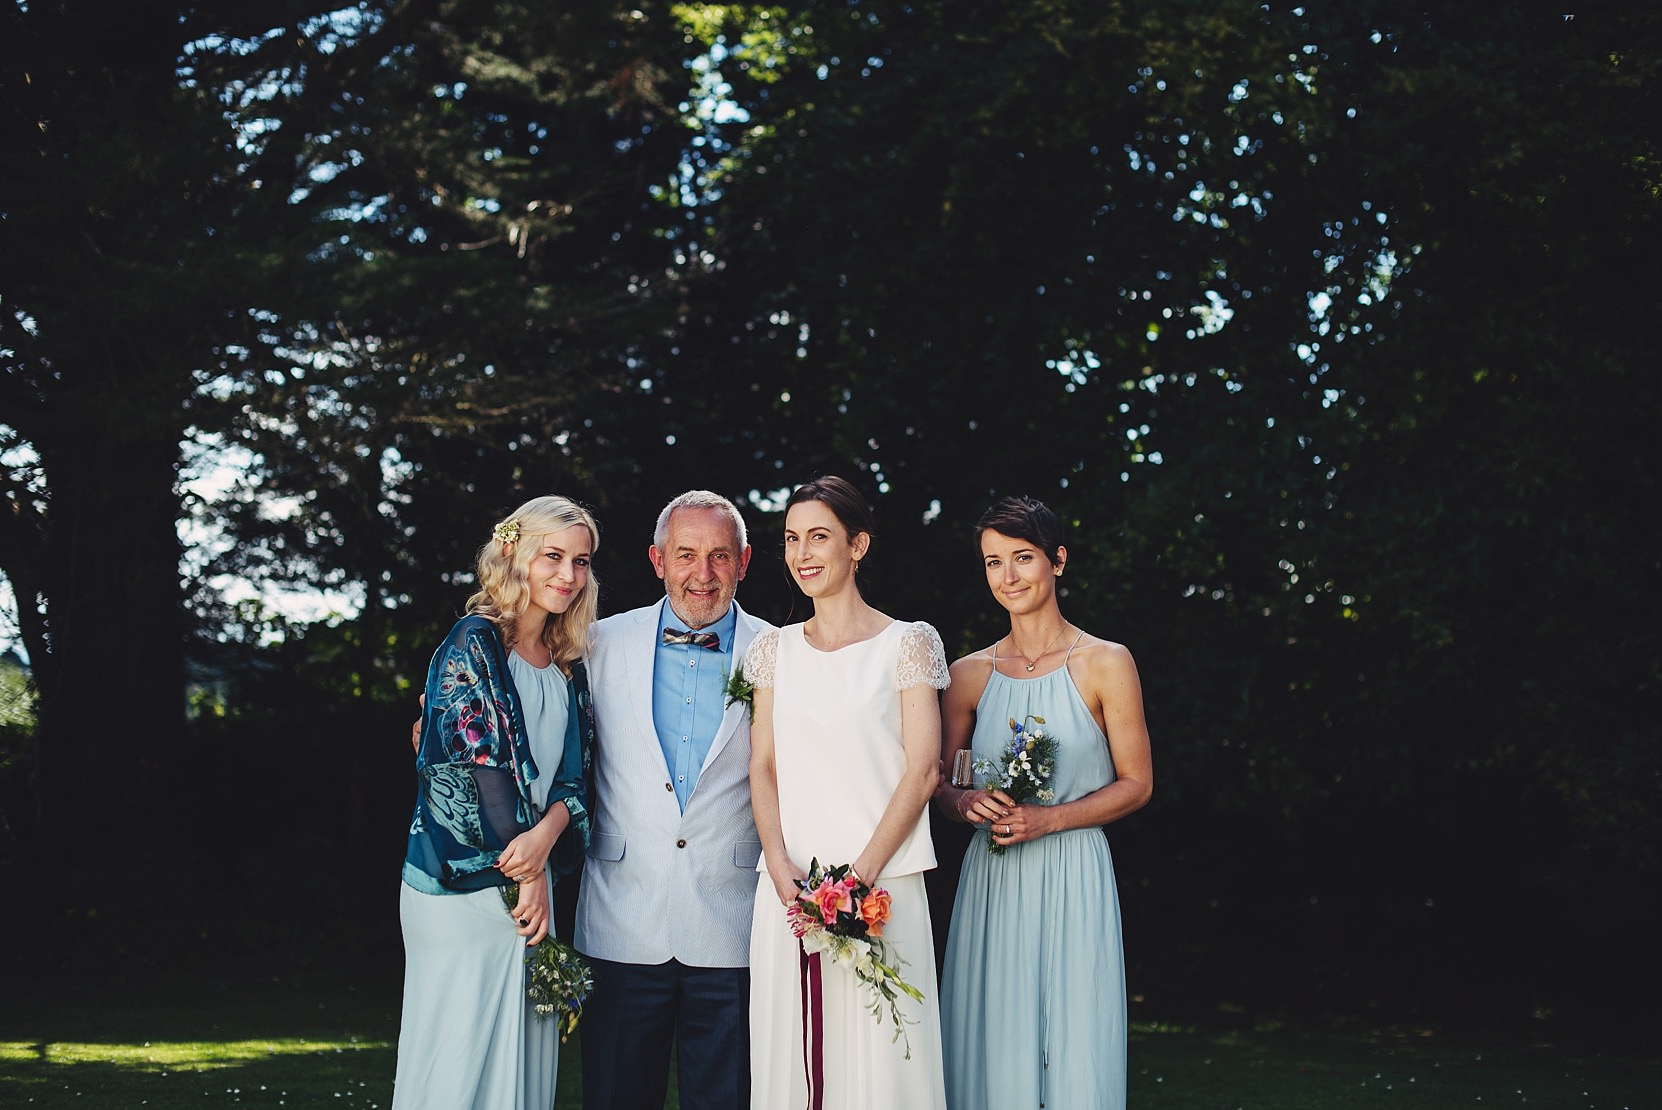 Bridal party photo with the brides dad outside the church in Limerick